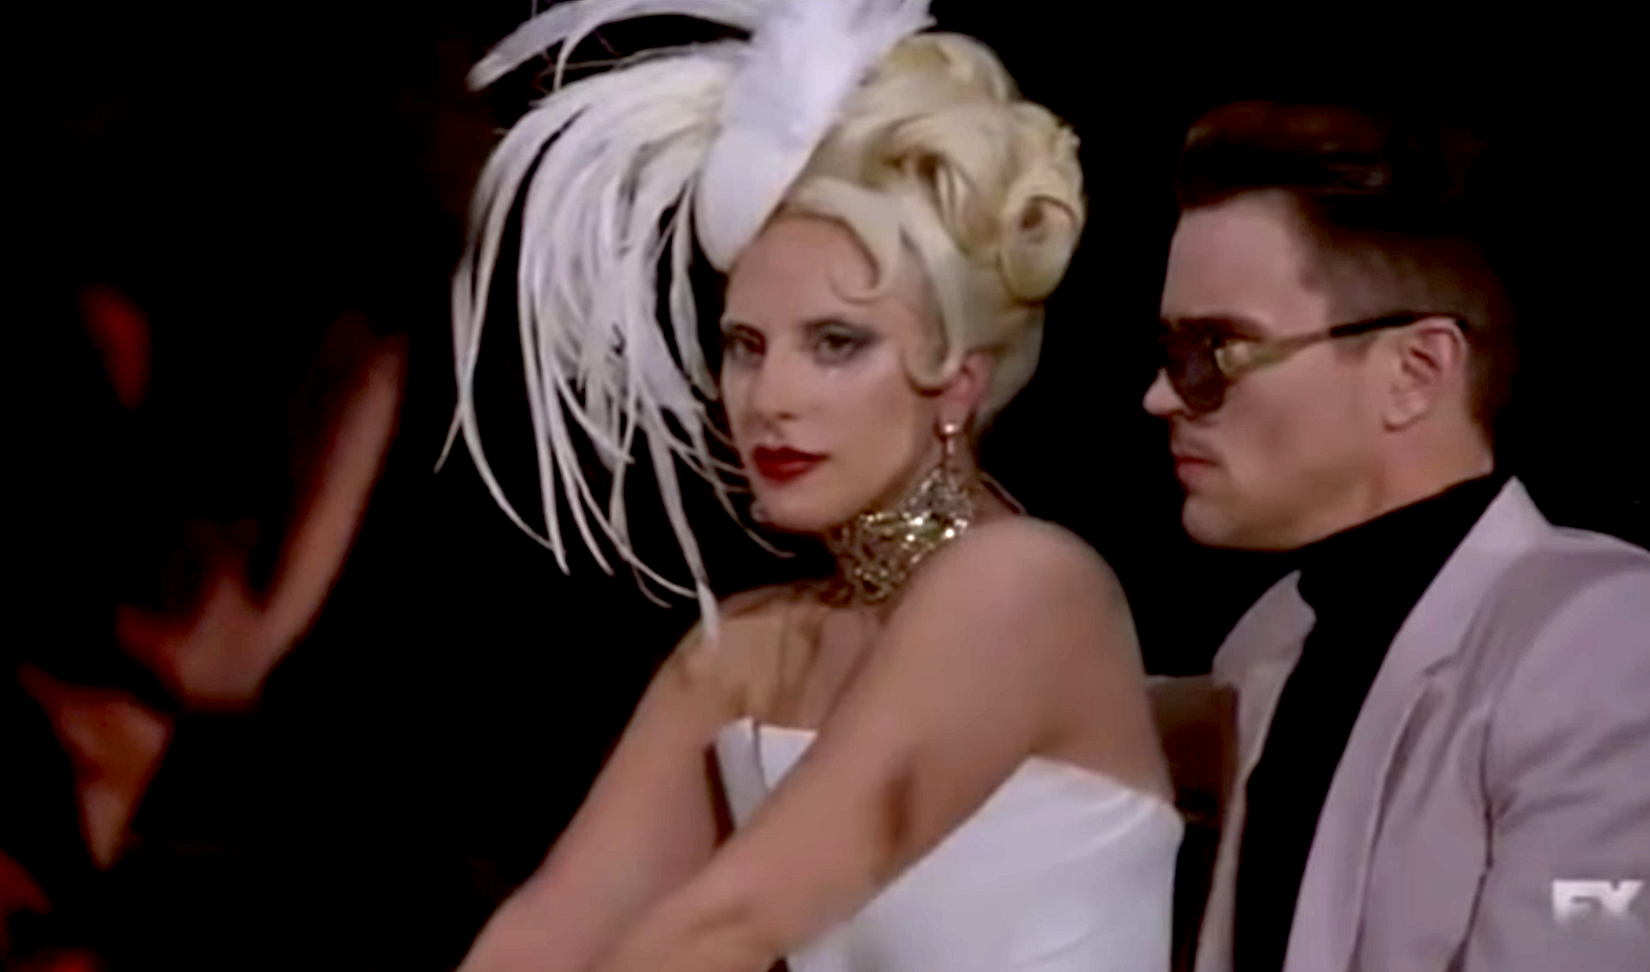 Lady Gaga in a structured strapless dress and white fat with long feathers coming out of it